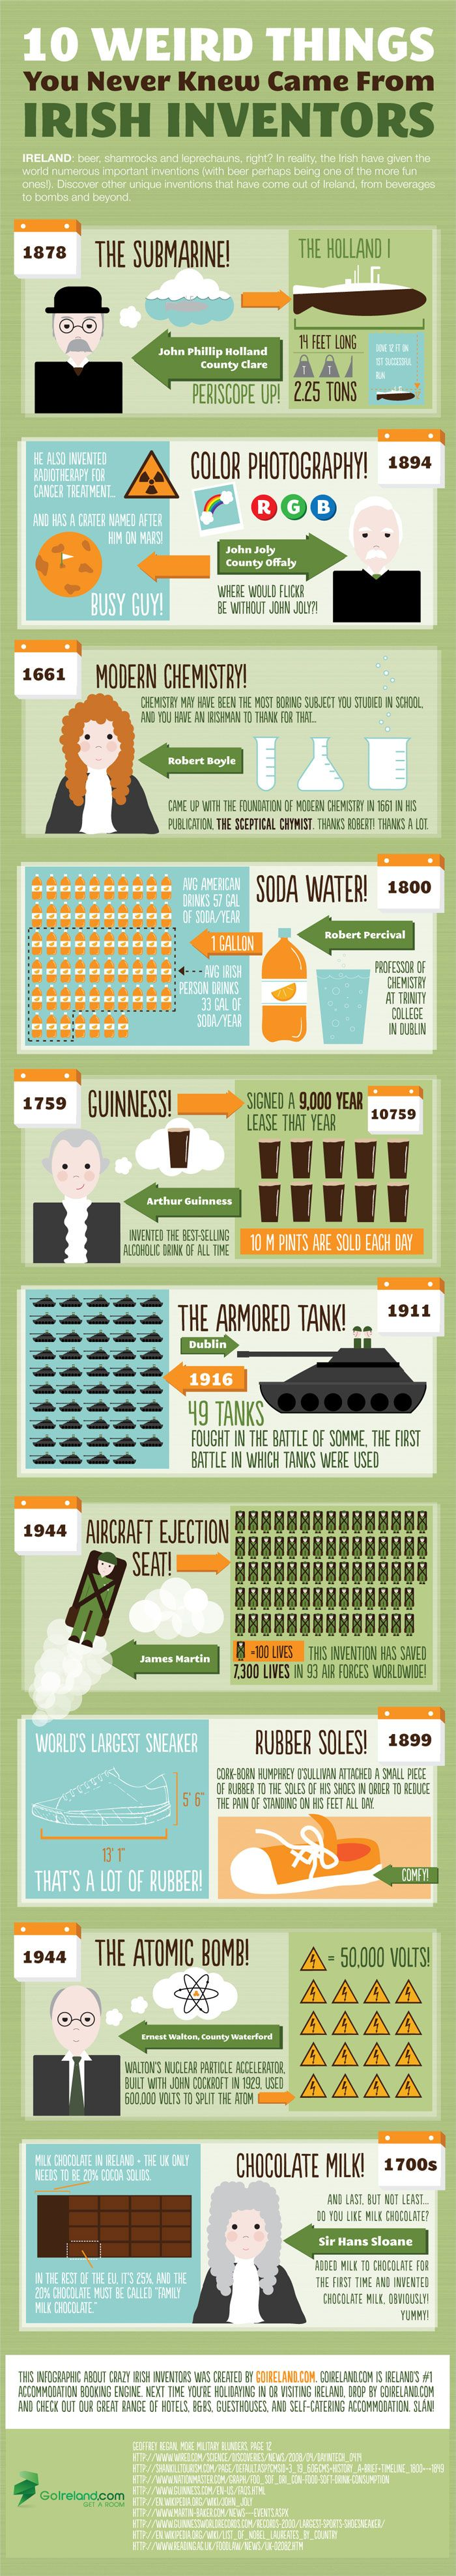 10 Innovations that came from Irish Inventors!